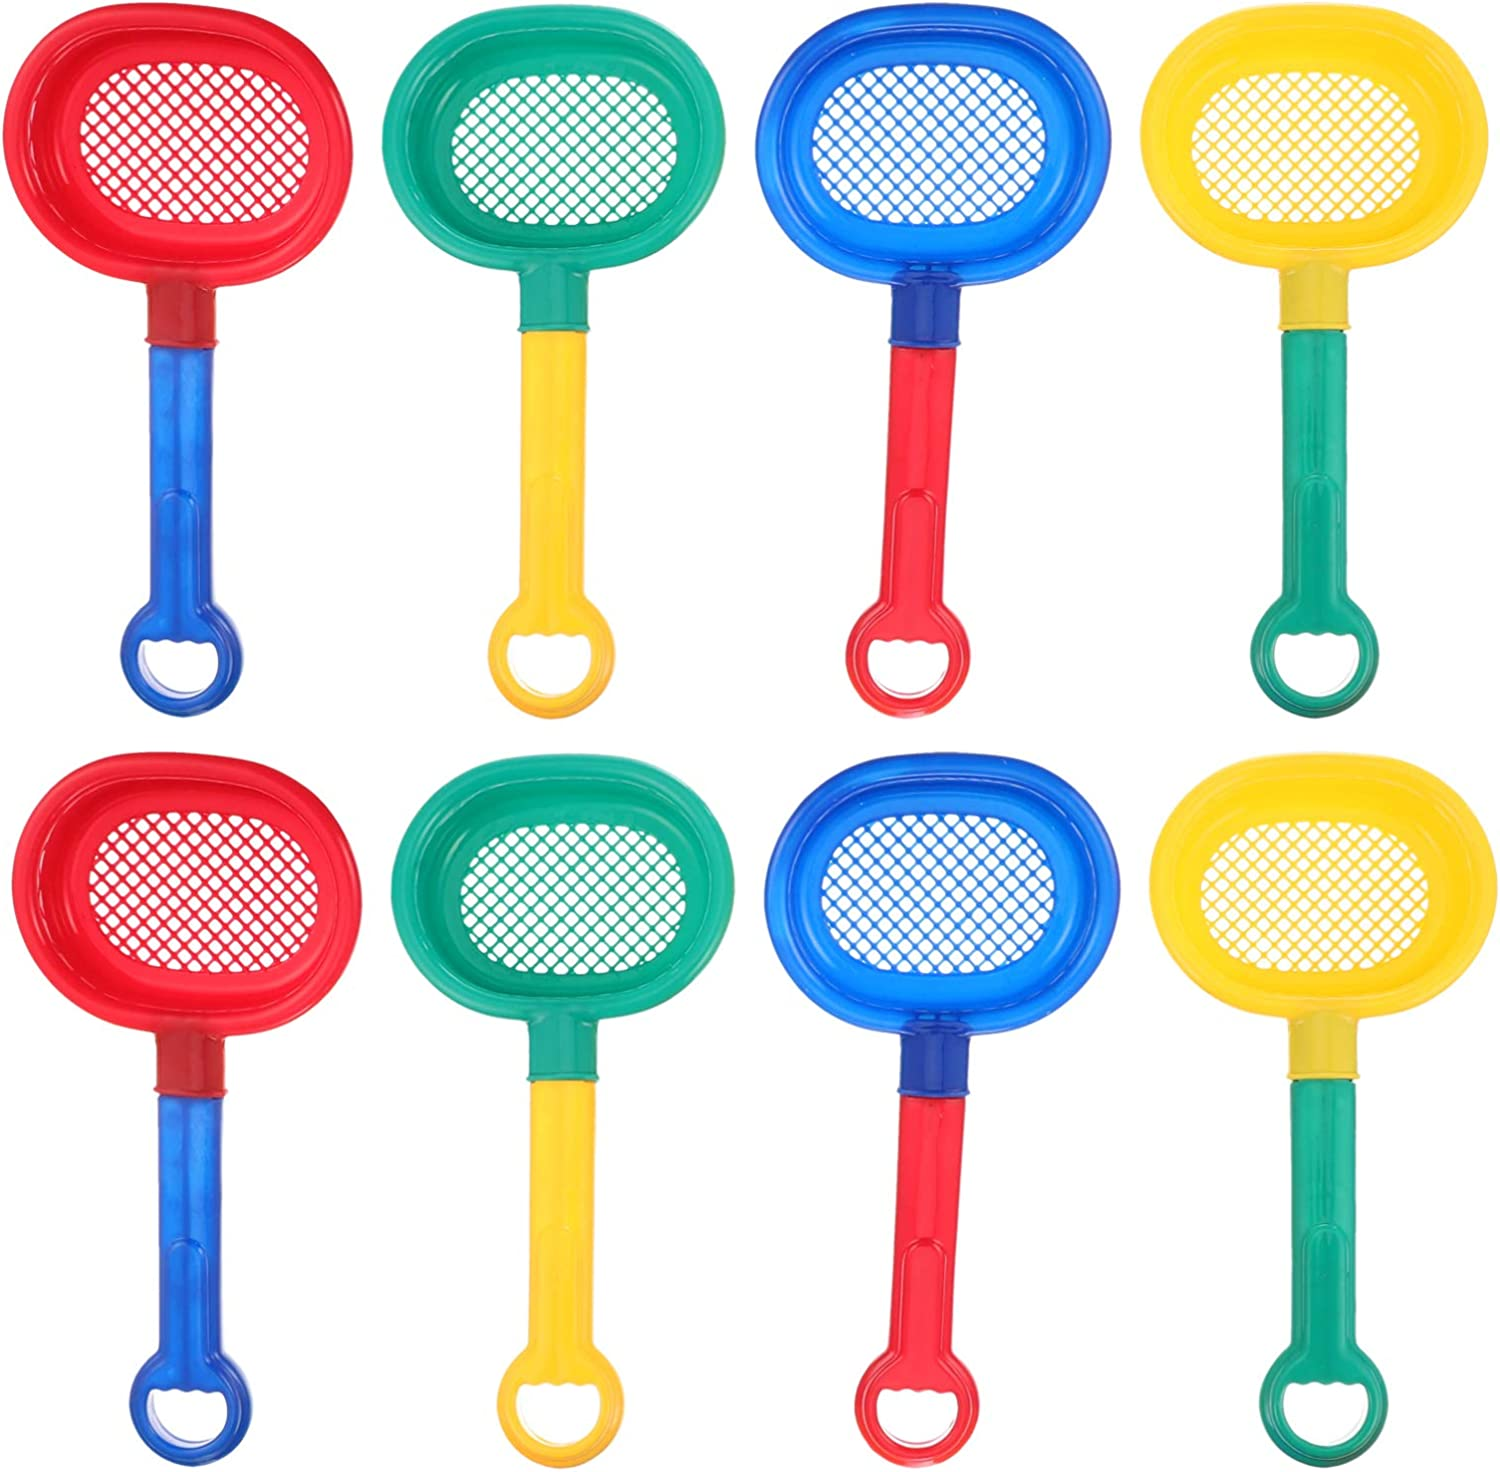 TOYANDONA 8pcs Popular overseas Plastic excellence Sand Sifter Kids Shovels for Sieves